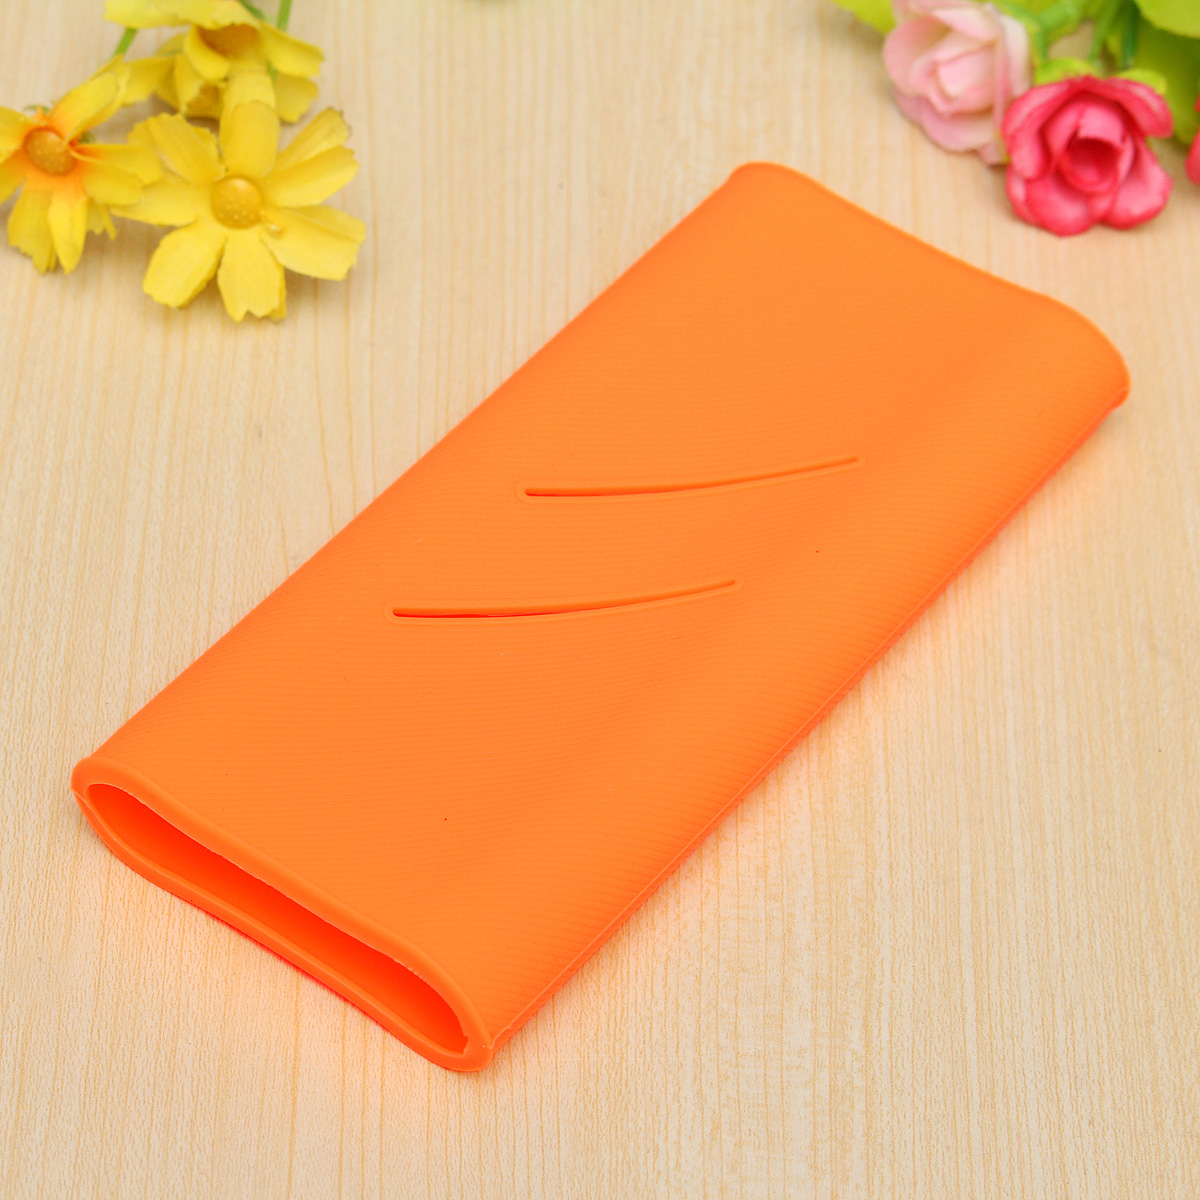 Xiaomi Silicon Case For Mi Power Bank 16000 Mah Orange Daftar Silicone Powerbank 5000 Hitam New Soft Protective Cover